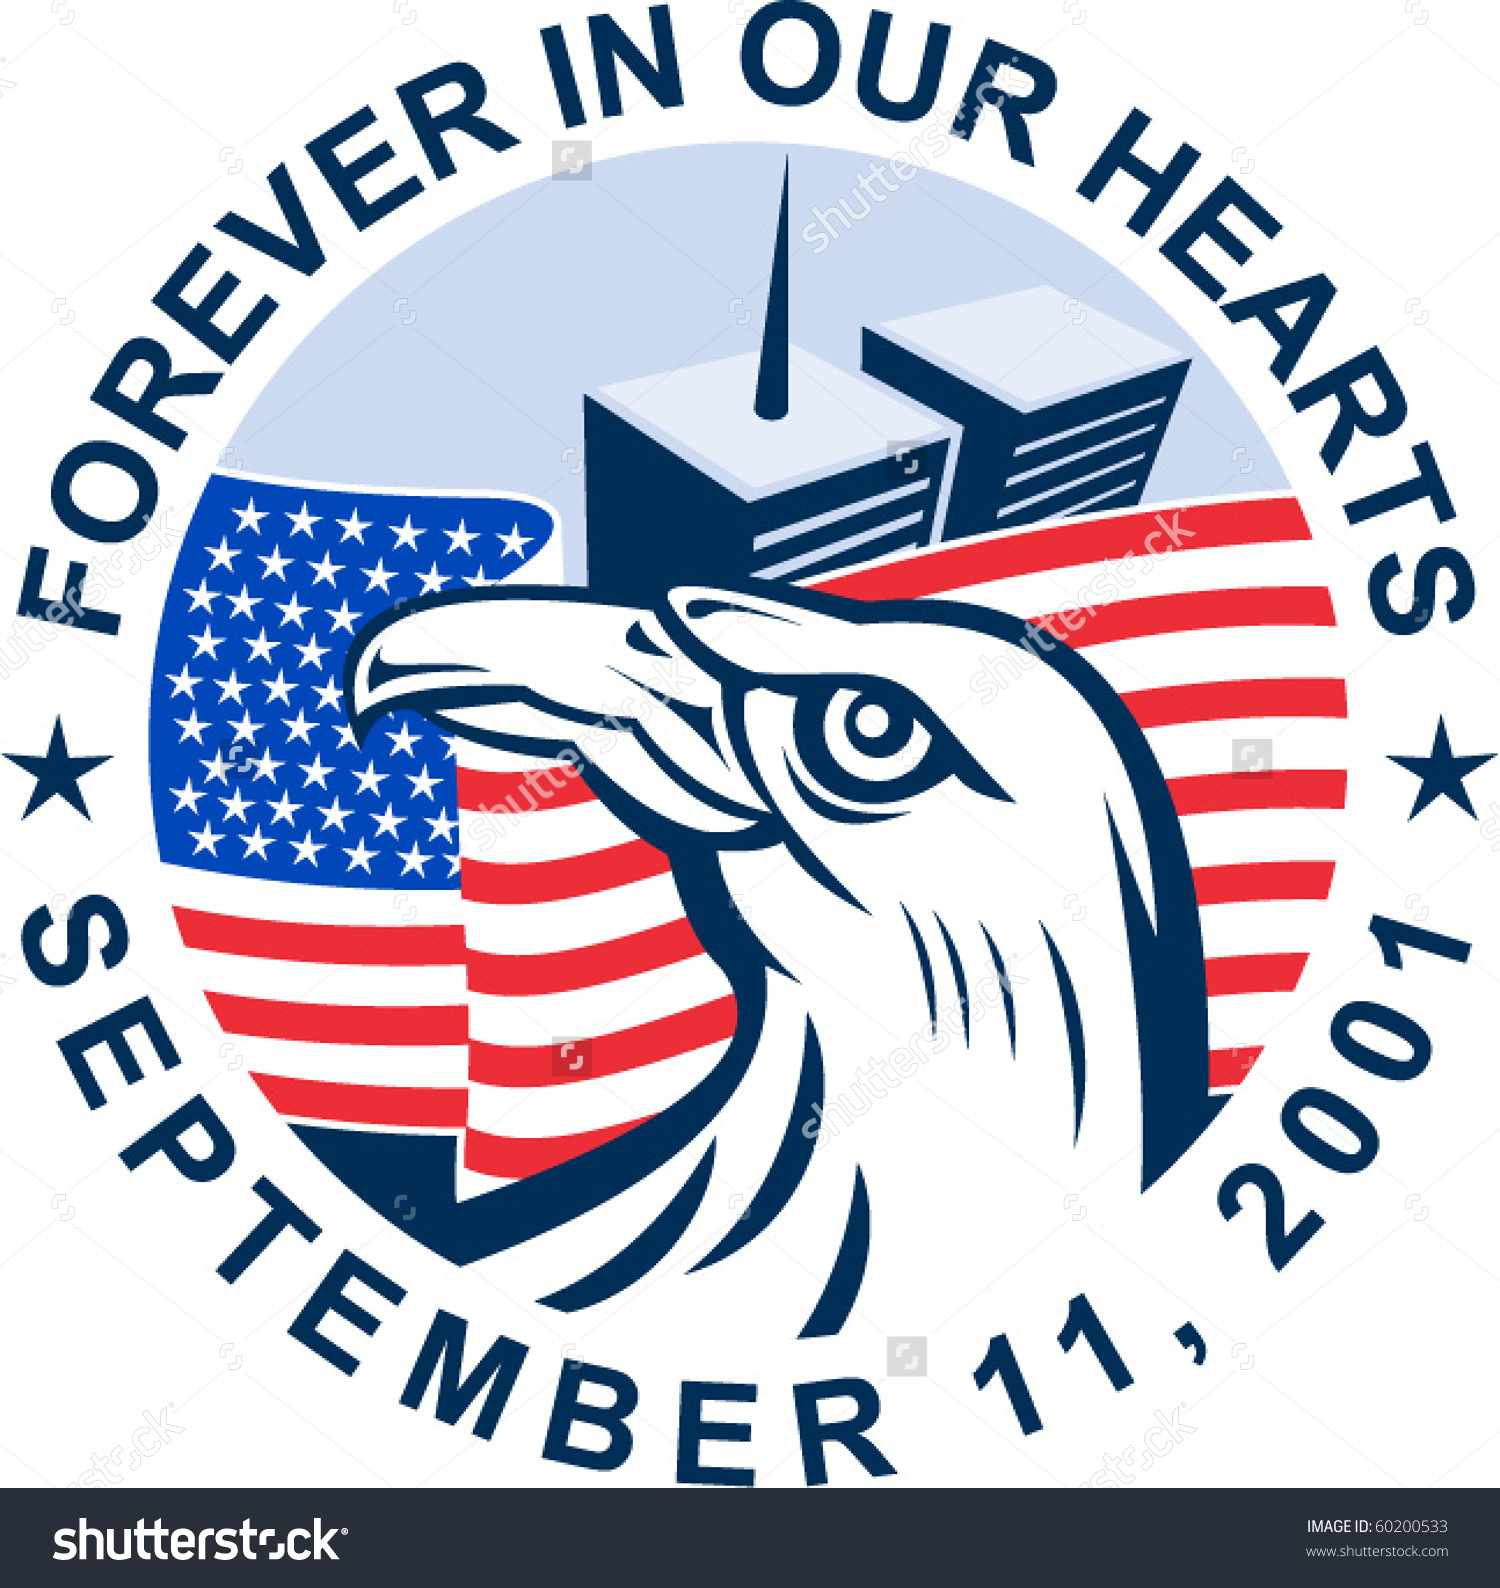 Us flag clipart 911 png free Us flag clipart 911 - ClipartFox png free